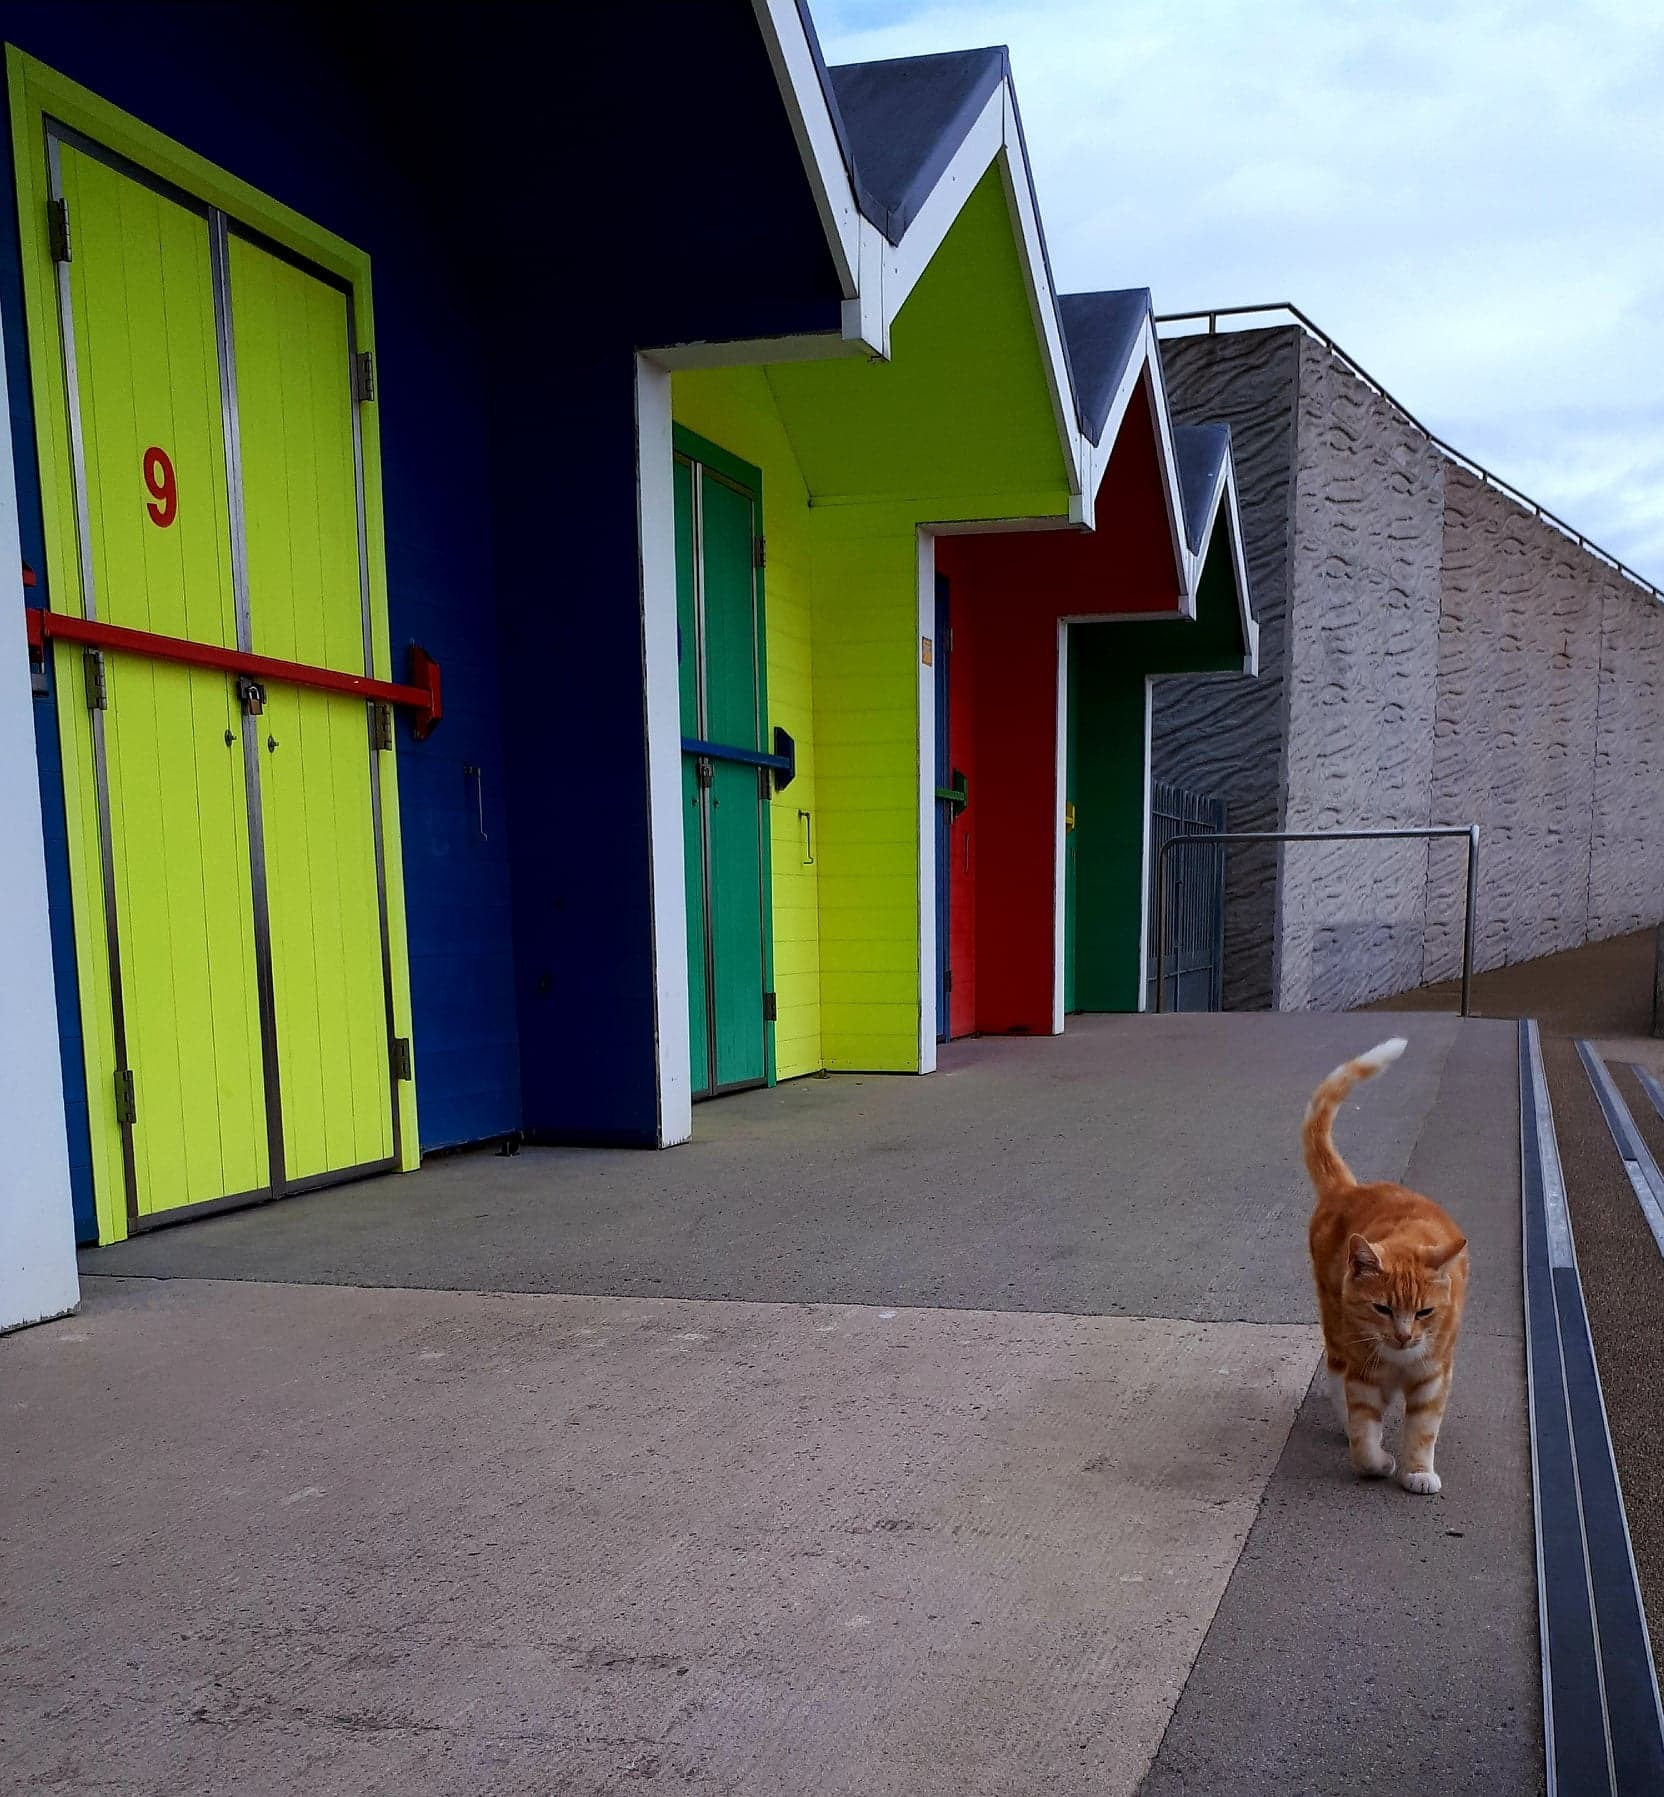 Vale council asks if some Barry Island beach huts should be licensed for wedding ceremonies